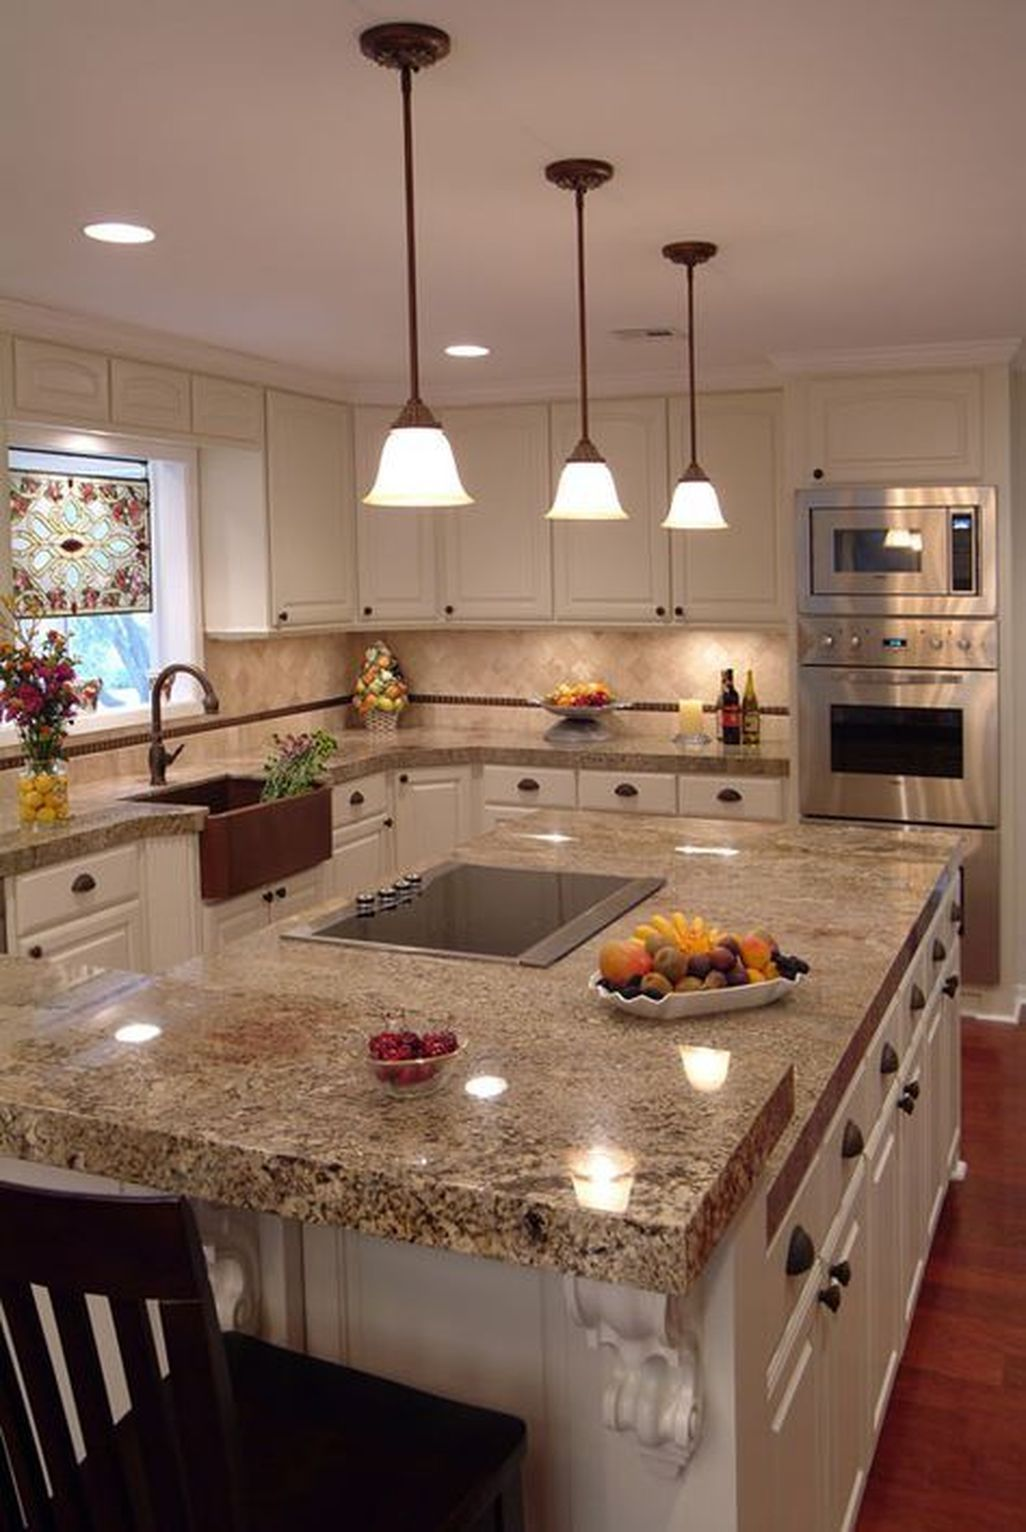 Marvelous themes ideas for your kitchen decoration in feast